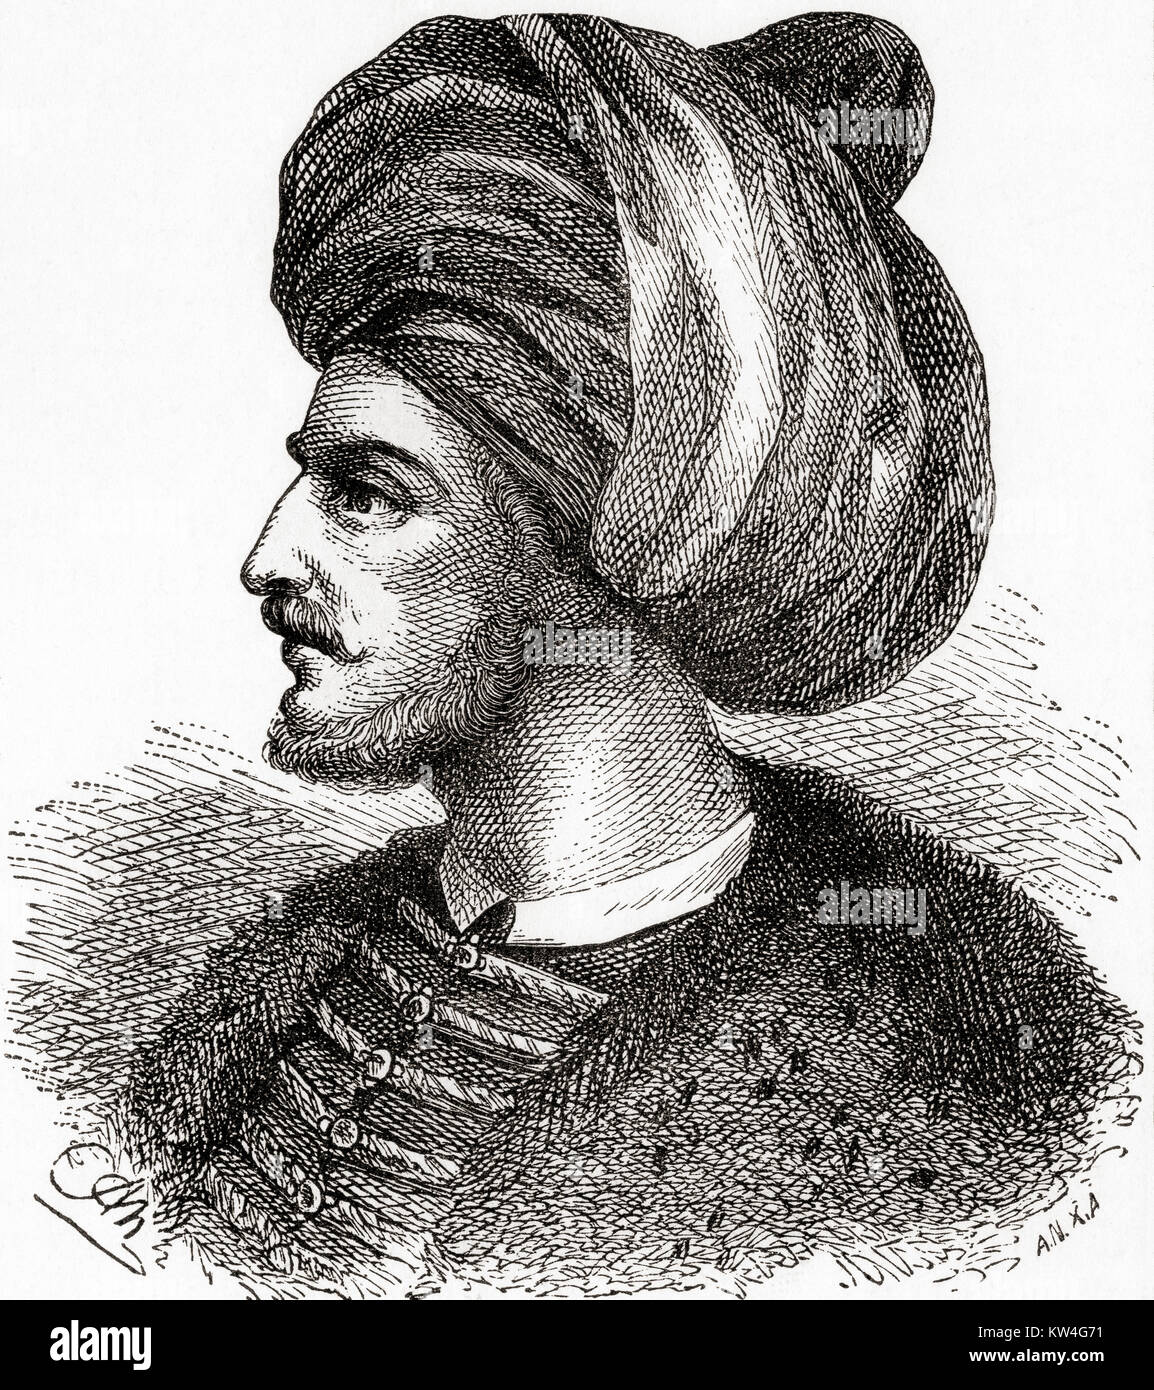 Mehmed II, aka Mehmed the Conqueror, 1432-1481.  Ottoman Sultan.  From Ward and Lock's Illustrated History of - Stock Image